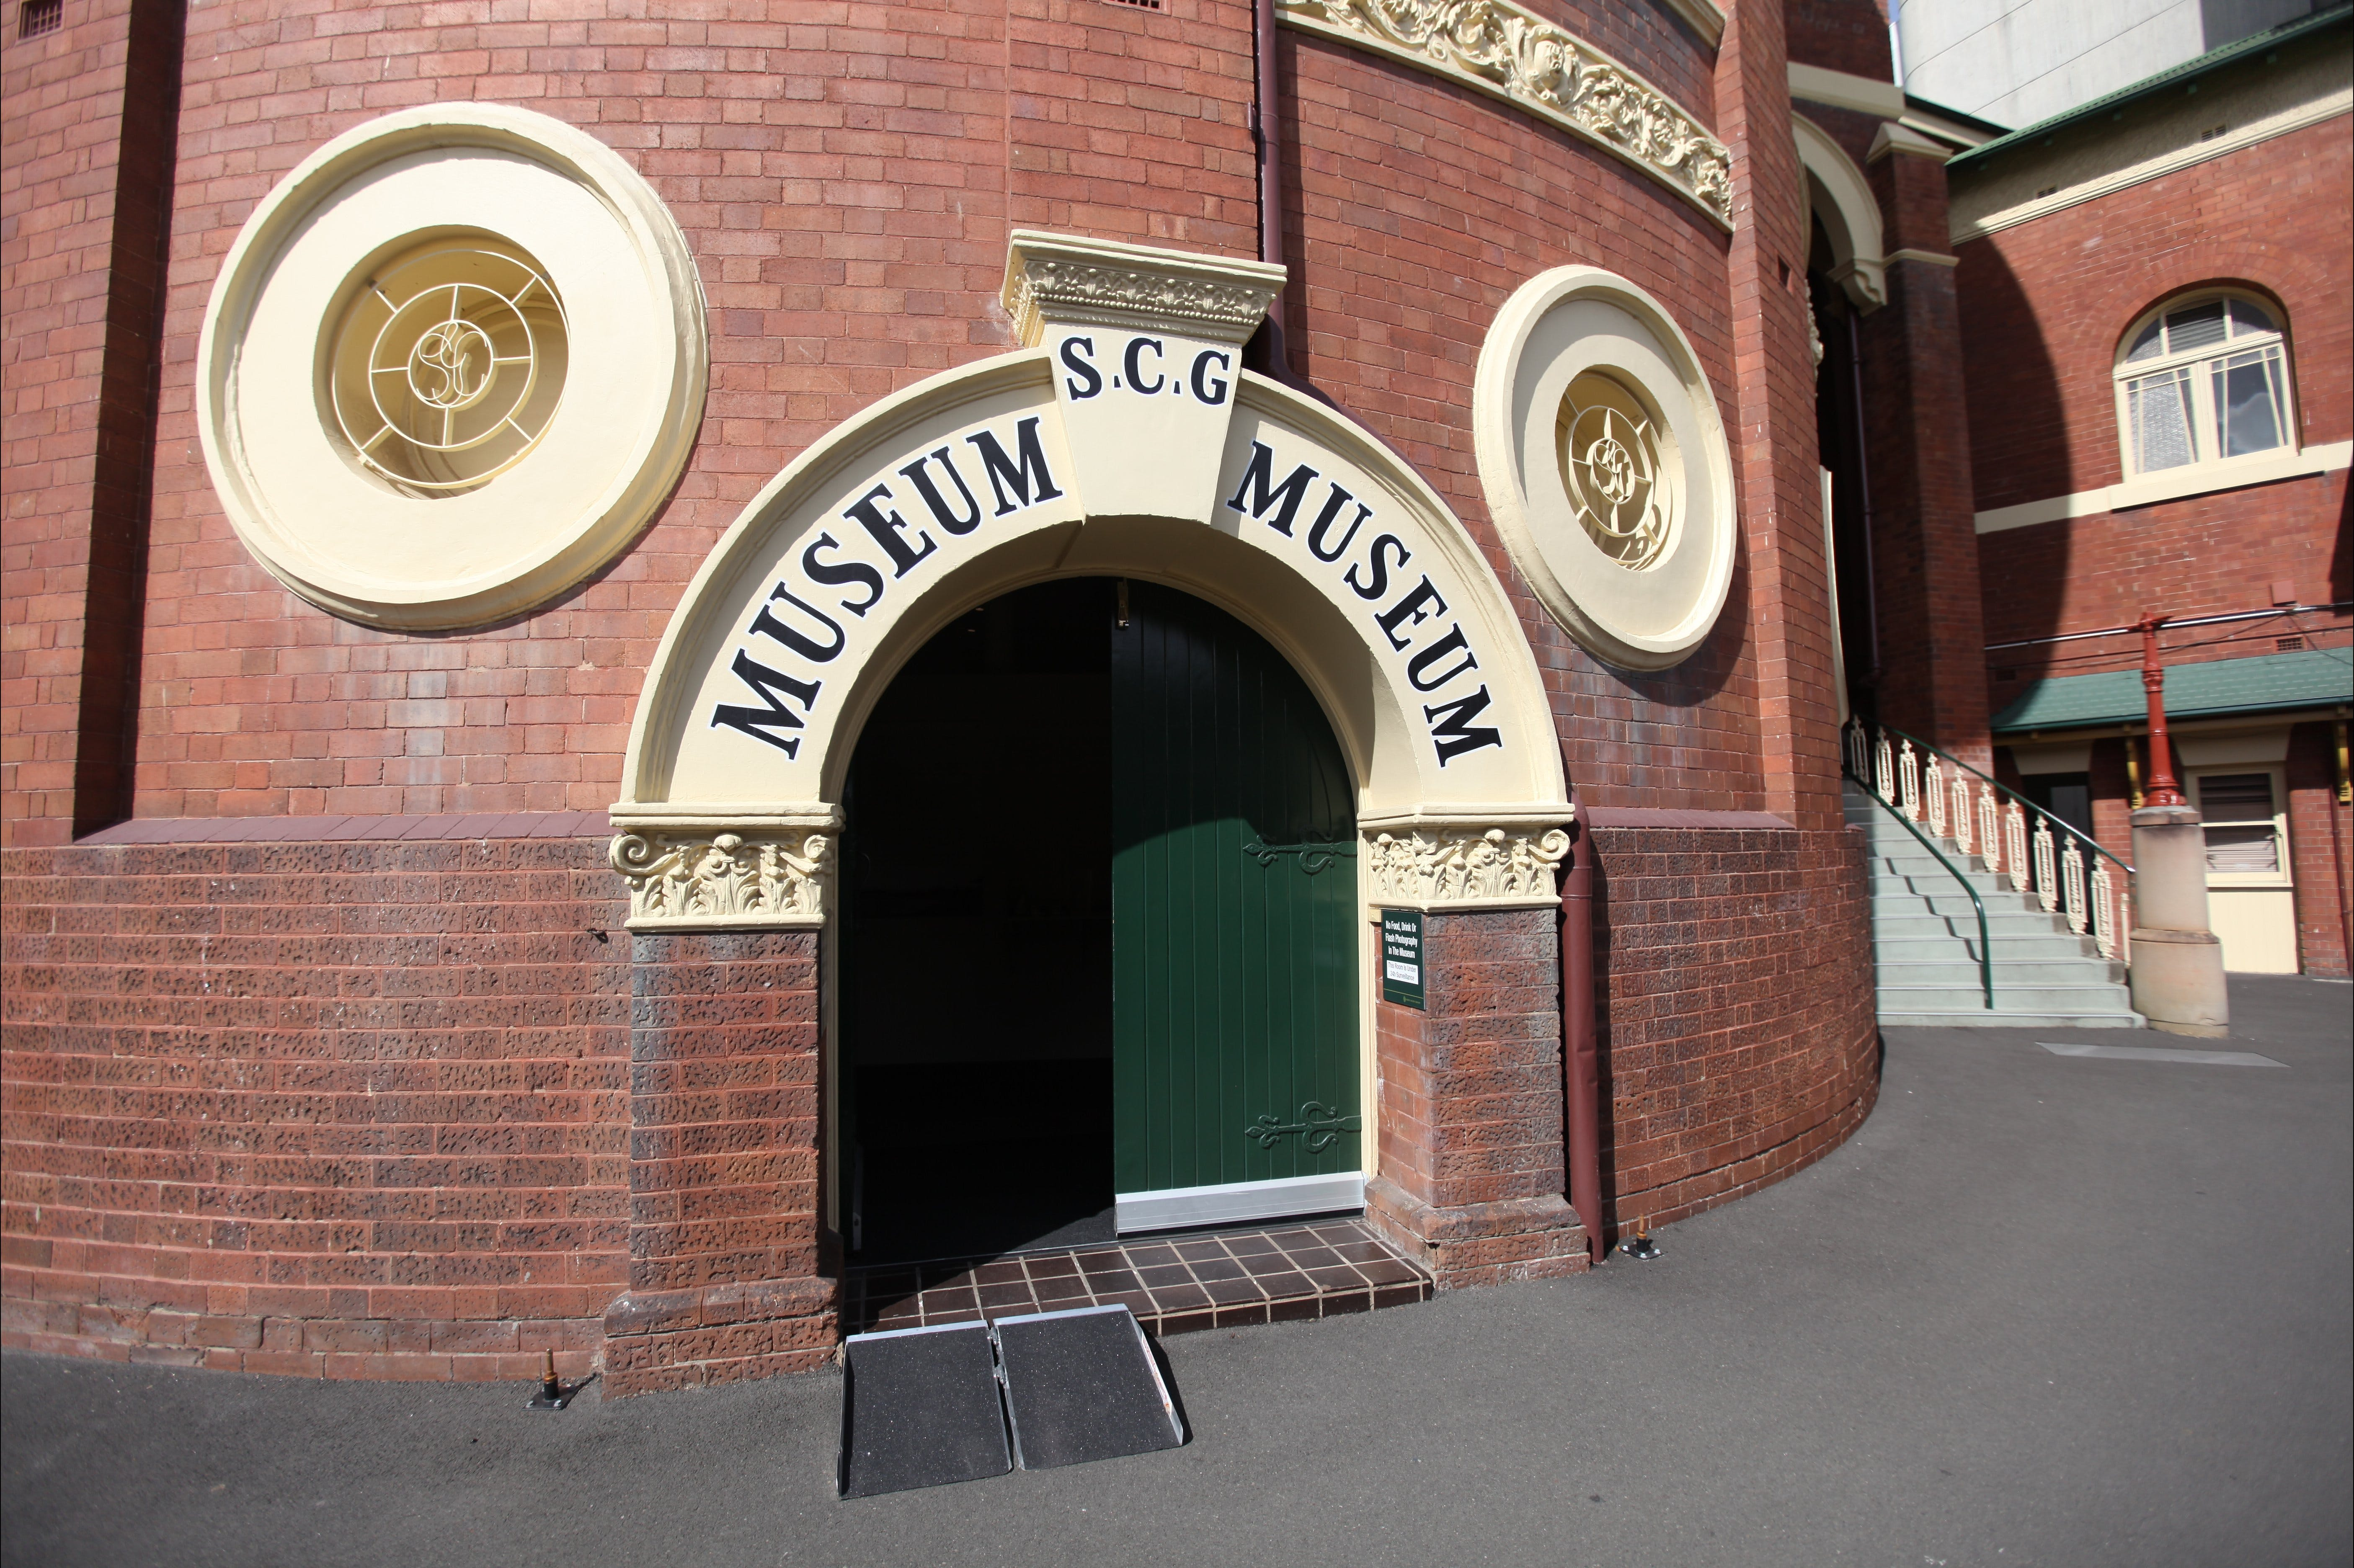 Sydney Cricket Ground Museum - New South Wales Tourism